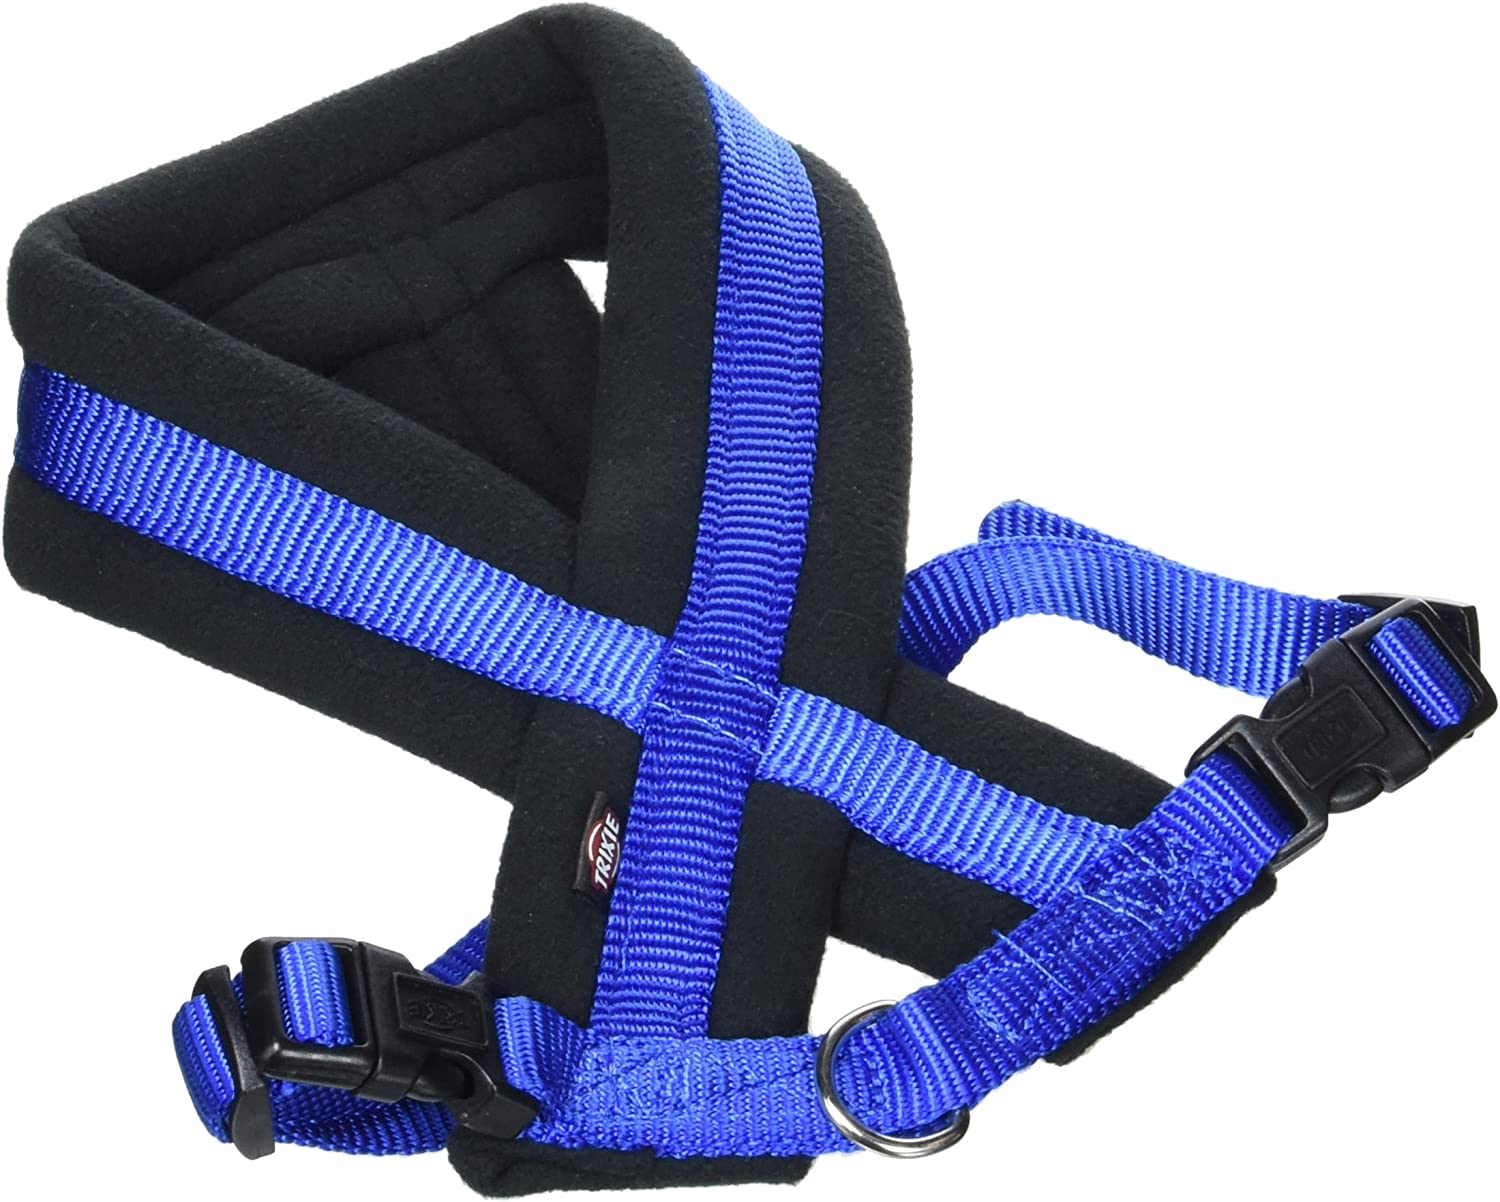 Blue 35-50 cm x 25 mm S Trixie Premium Harness with Fleece Padding